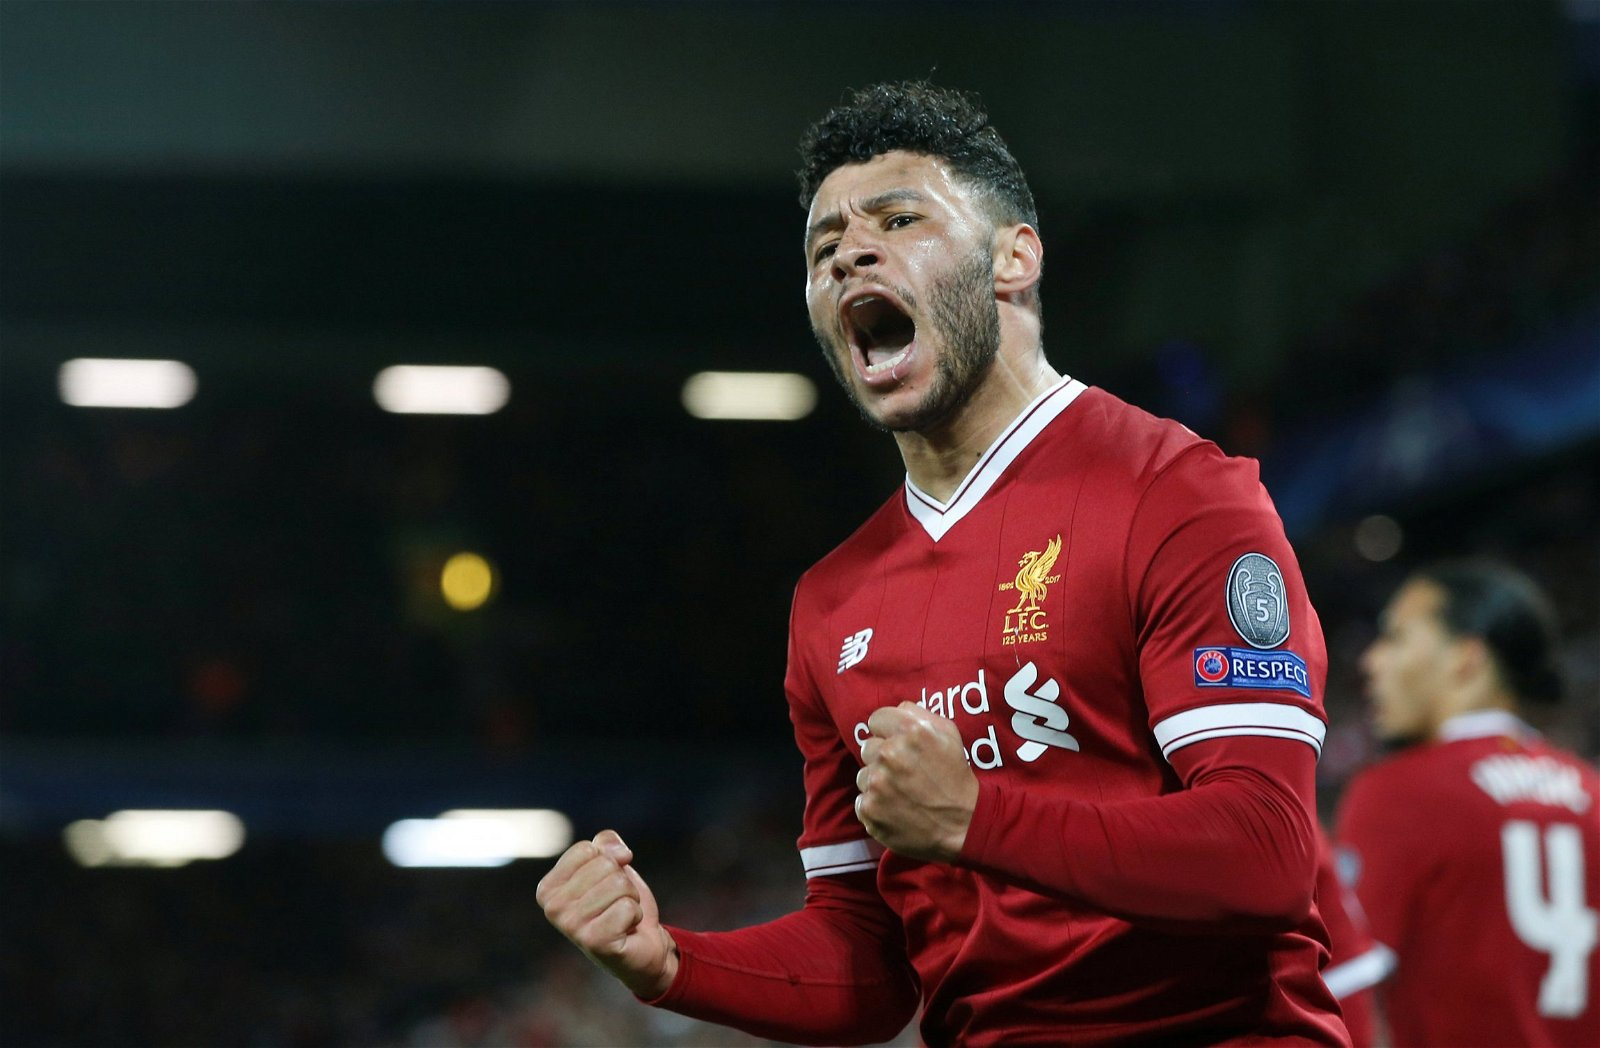 Alex Oxlade-Chamberlain celebrates scoring for Liverpool